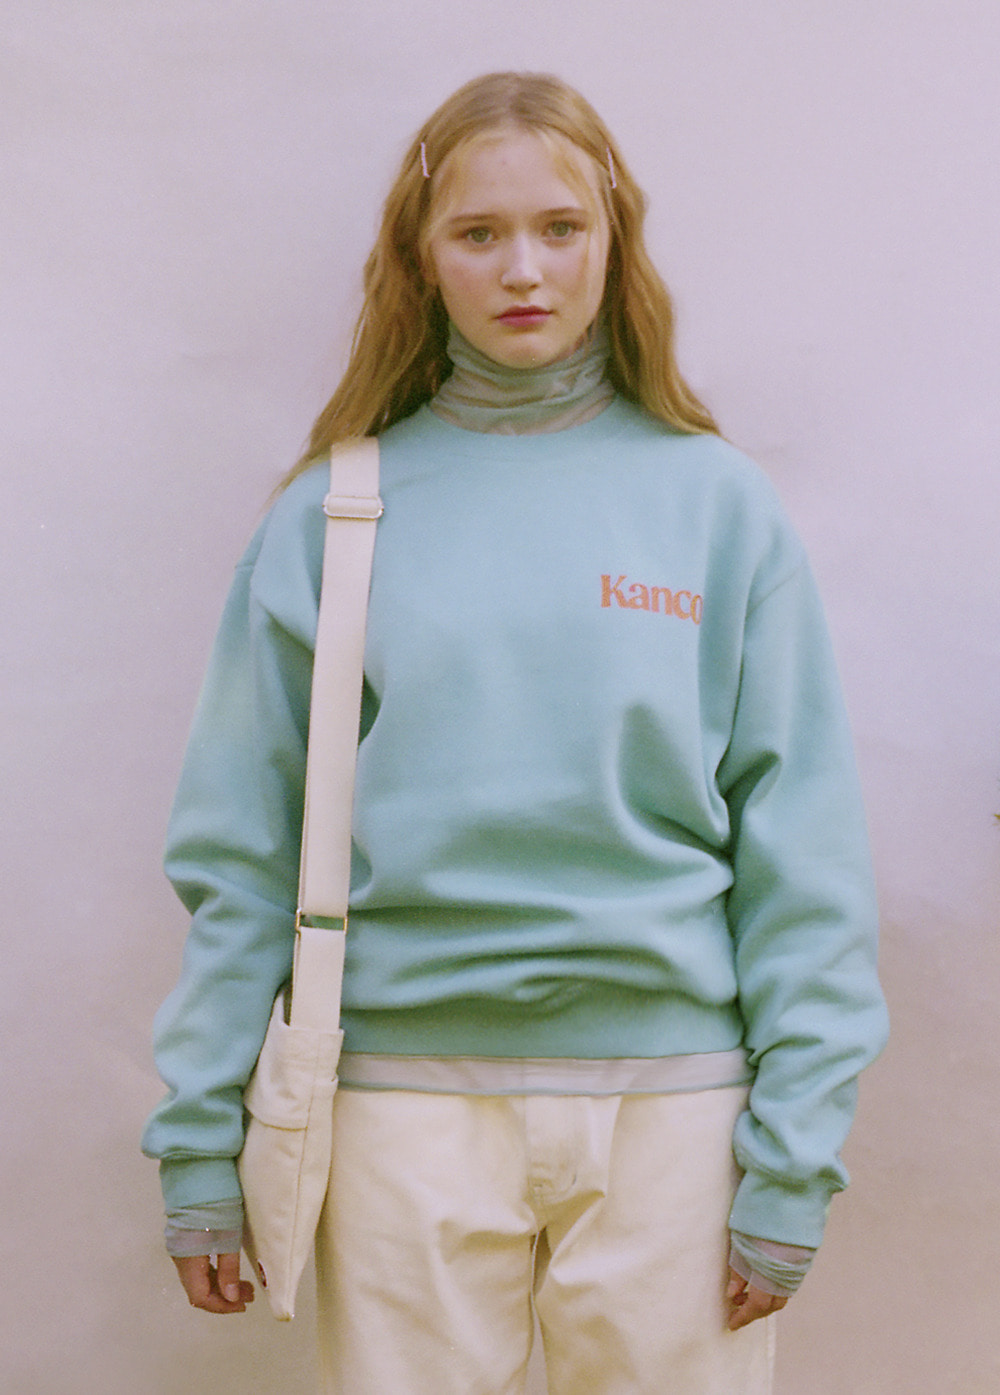 KANCO MINI SERIF LOGO SWEATSHIRT mint